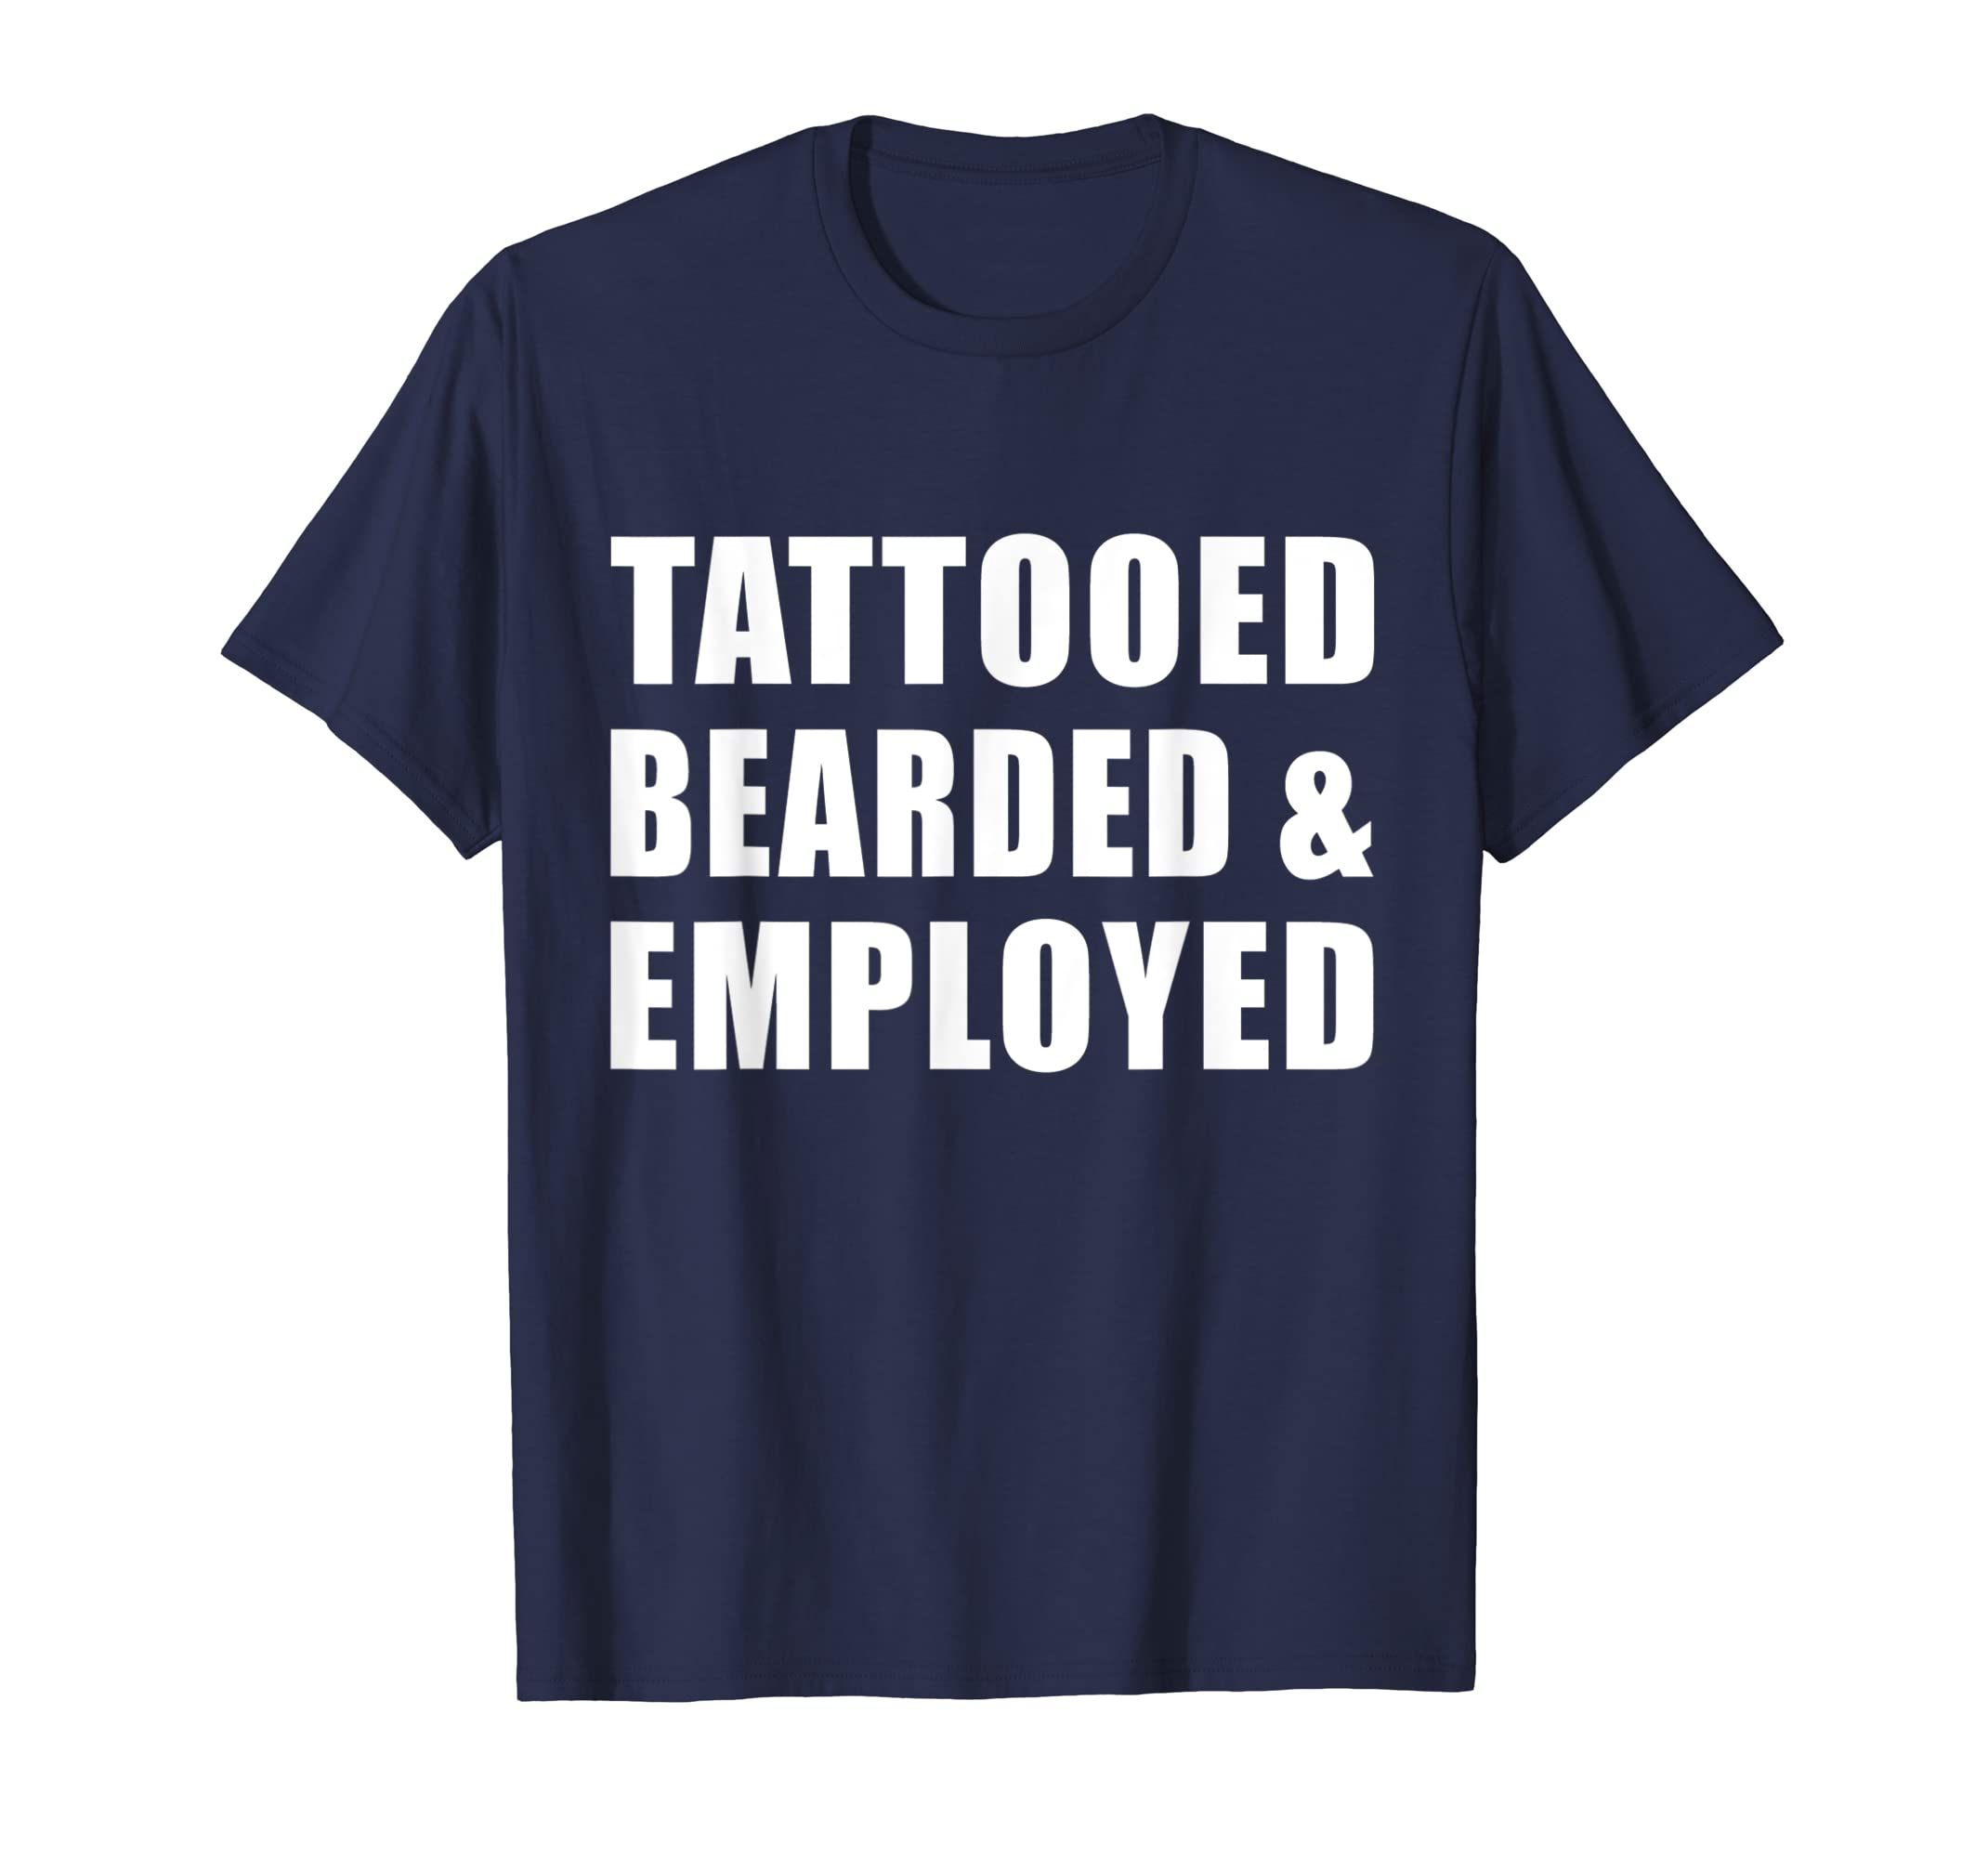 69b6dc4ac86 Amazon.com  Mens Tattooed Bearded and Employed T-Shirt  Clothing